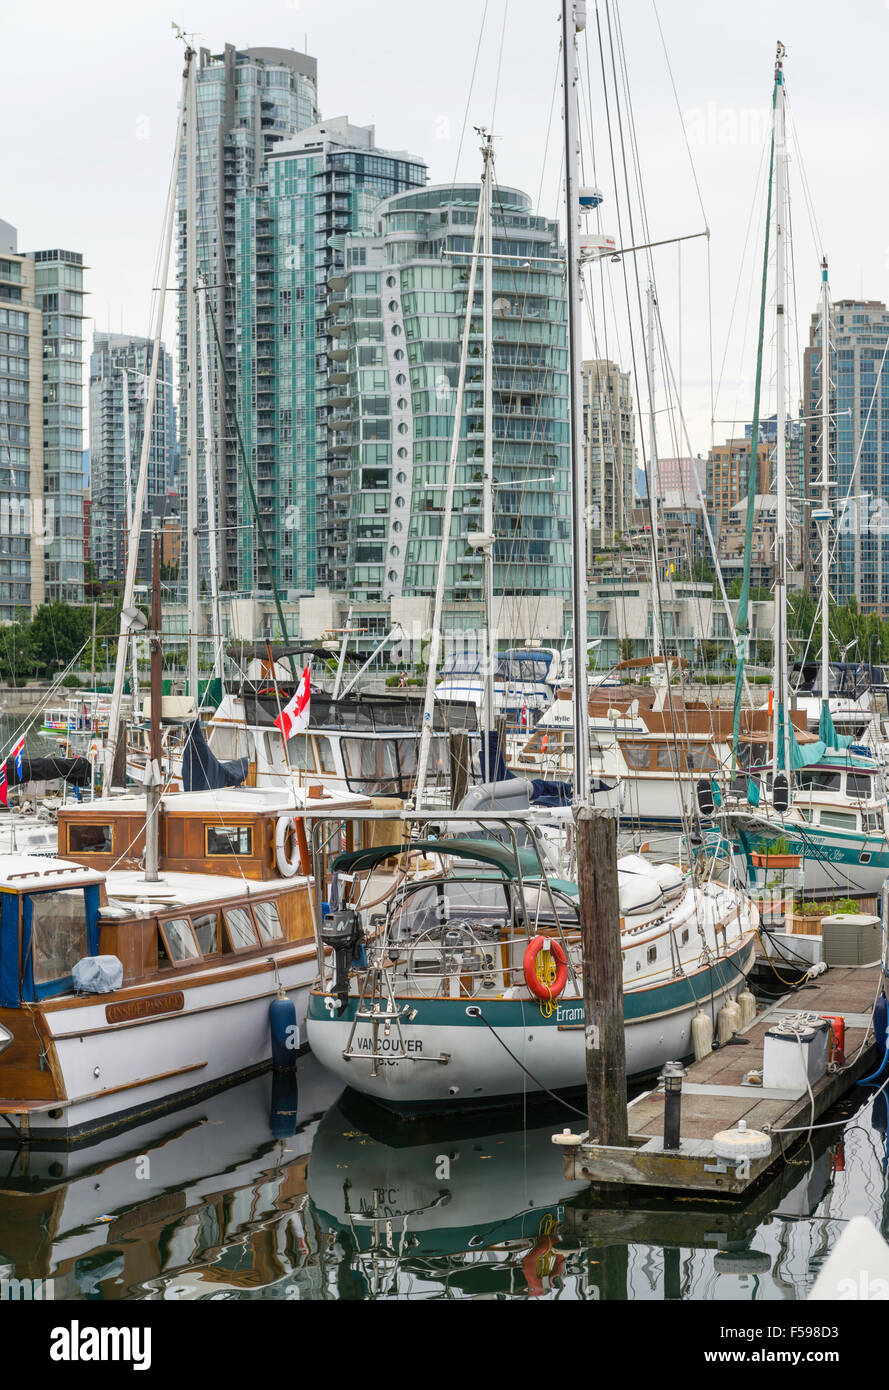 Boats at Spruce Harbour Marina and downtown Vancouver across False Creek, seen from Island Park Walk, Vancouver, - Stock Image